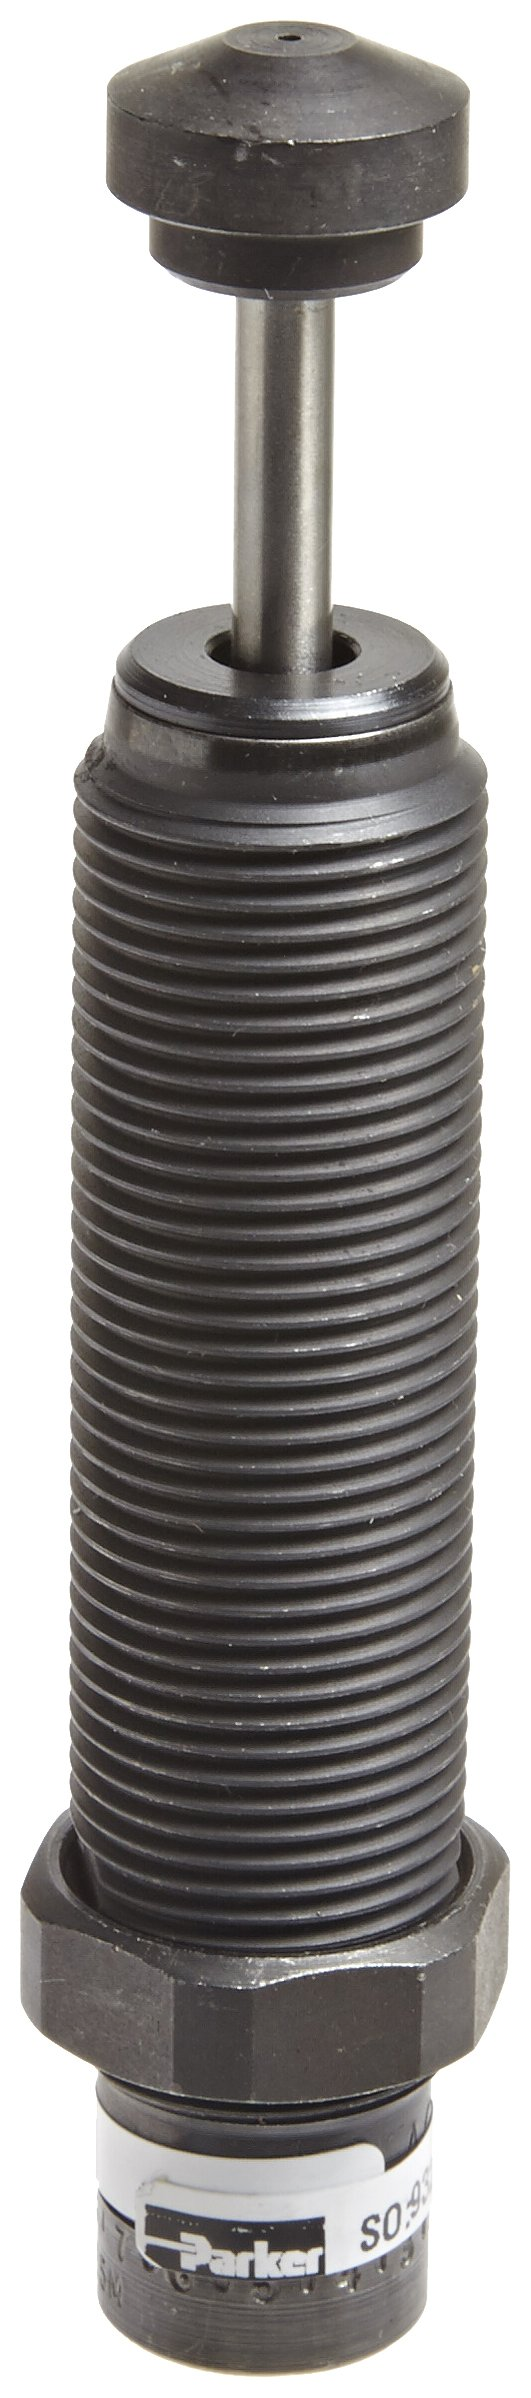 Parker MA225M Steel Adjustable Miniature Shock Absorber, Standard Duty, 3/4 inches Stroke, M20 Metric